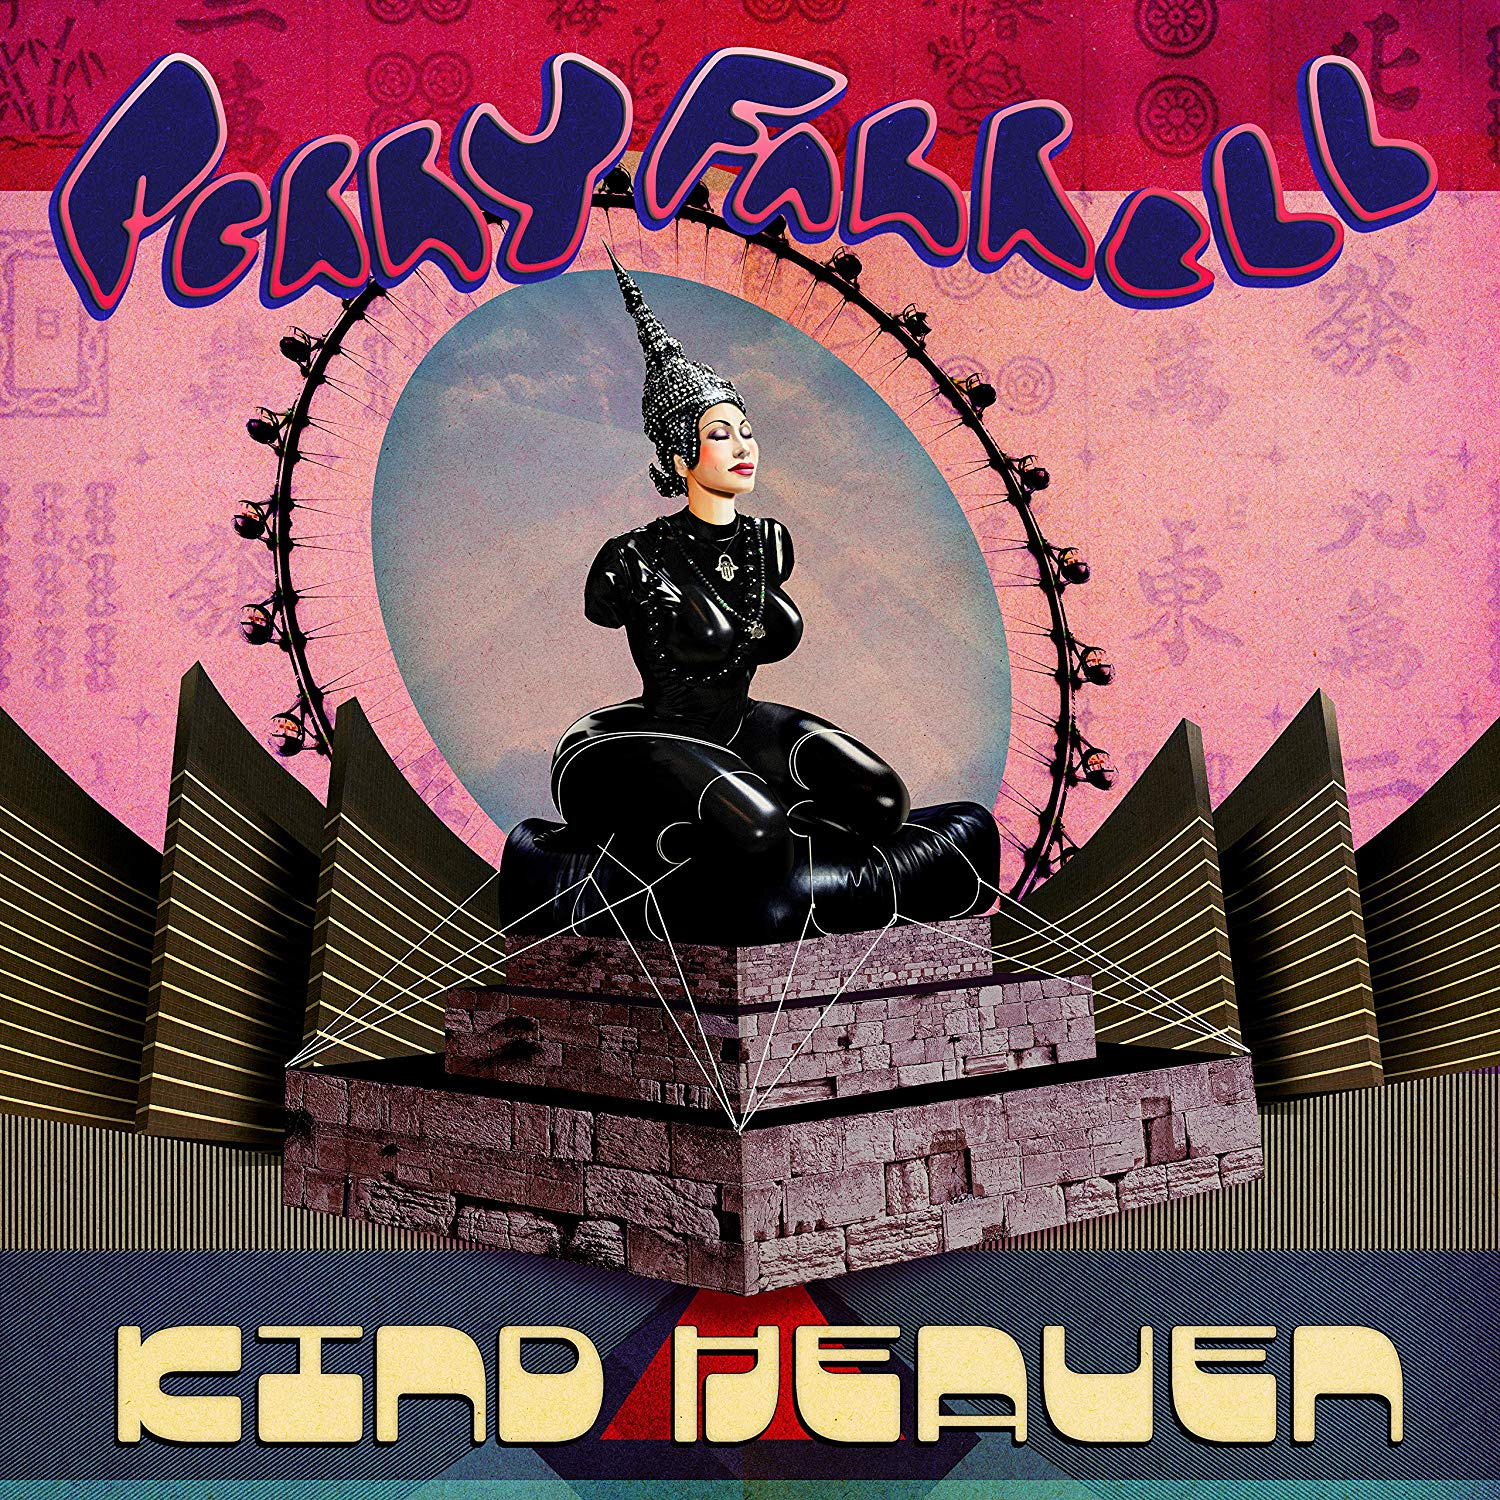 45e6e70420 We are loving the new album Kind Heaven from Jane's Addiction's Perry  Farrell! Kind Heaven comes out Friday 6/7. Have you pre-ordered your copy  yet?